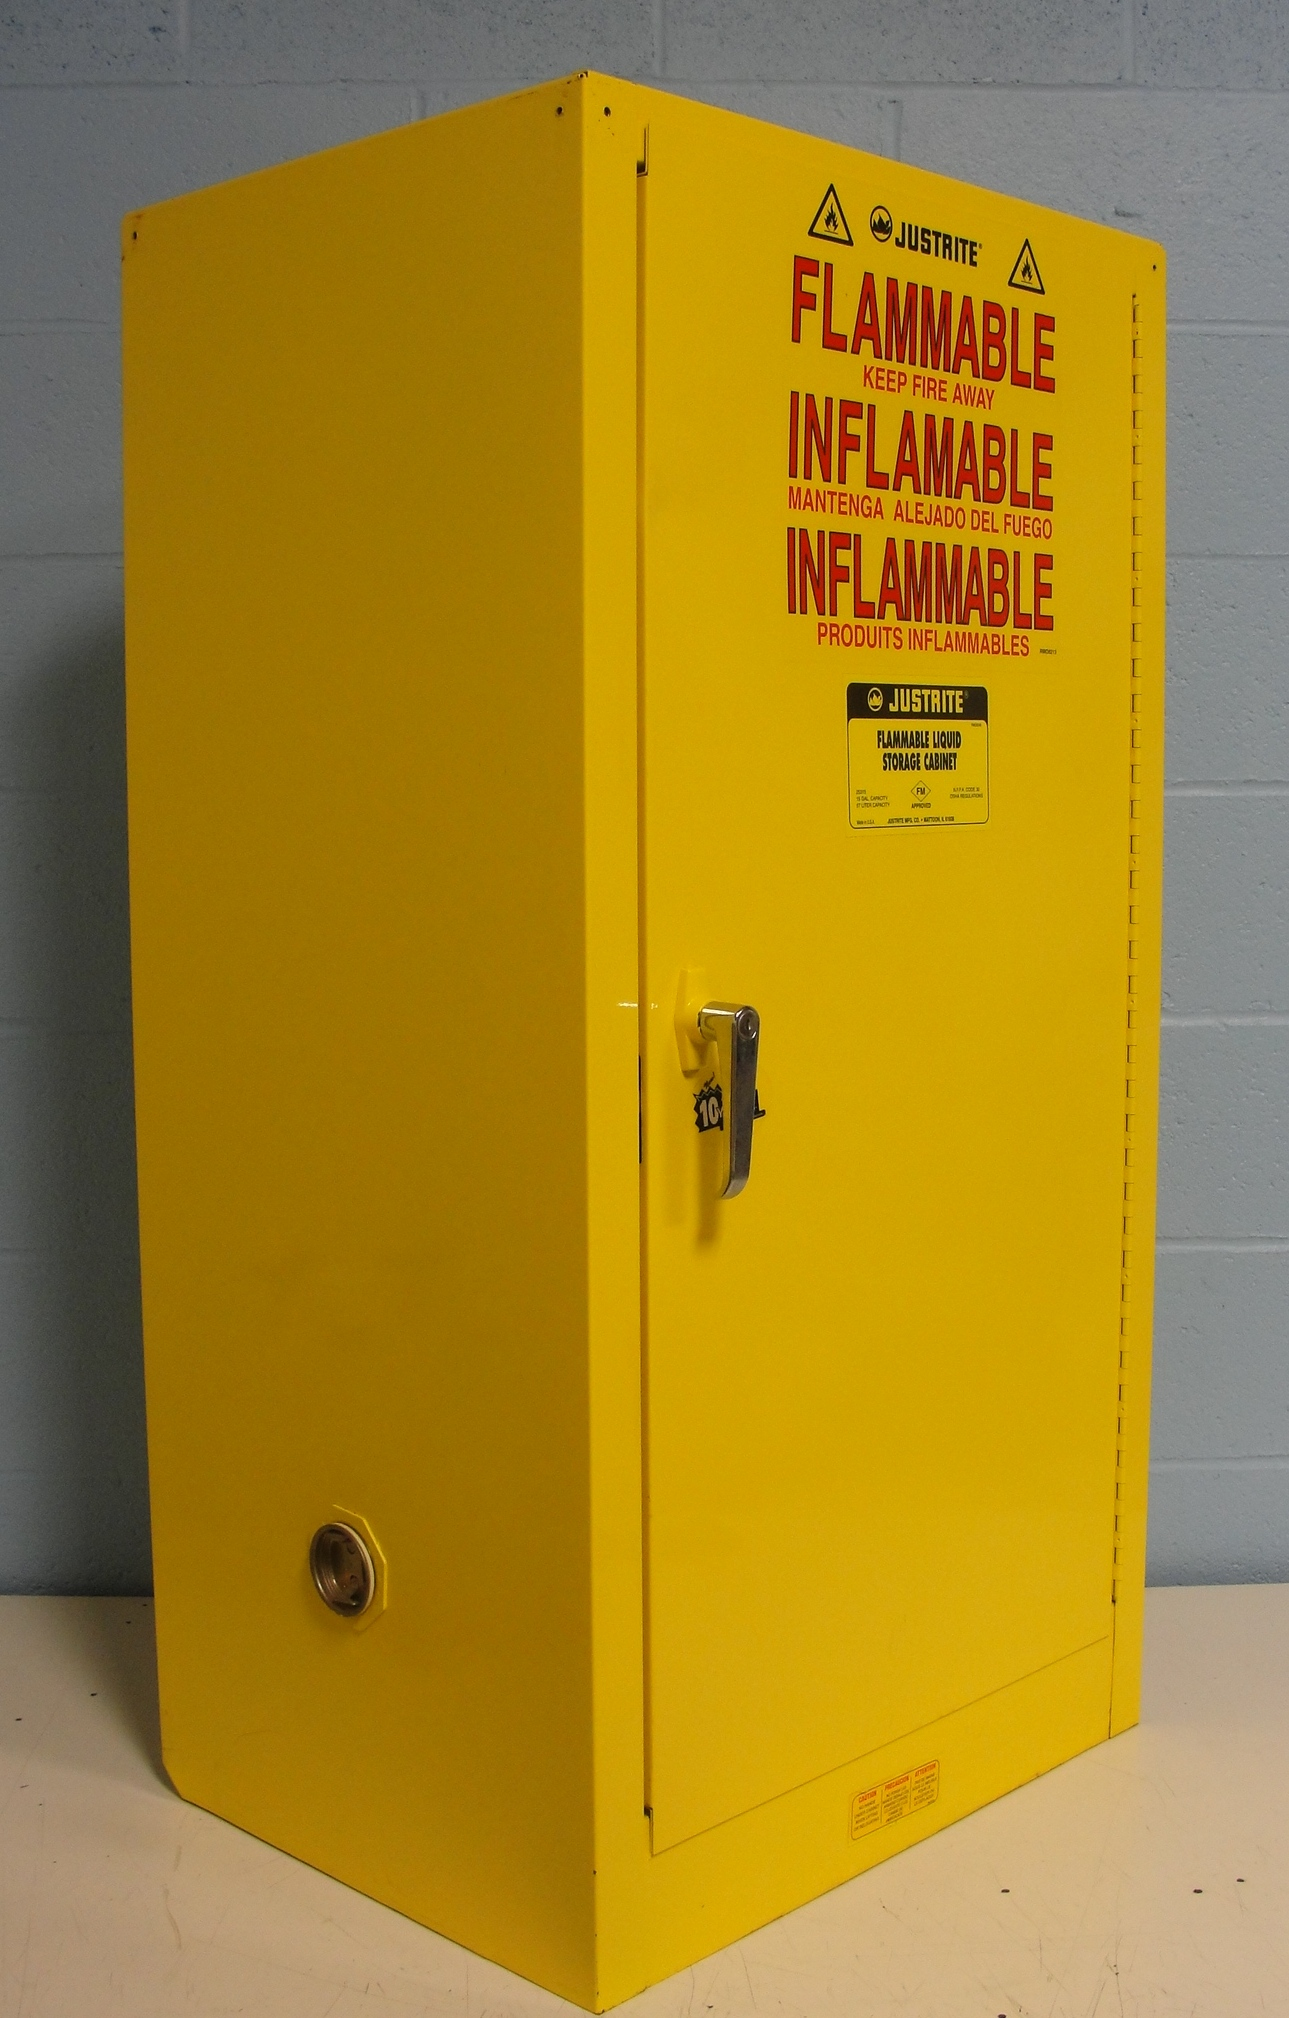 Justrite 25710 Flammable Liquid Storage Cabinet Image Justrite 25710 Flammable Liquid Storage Cabinet Image ... & Refurbished Justrite 25710 Flammable Liquid Storage Cabinet